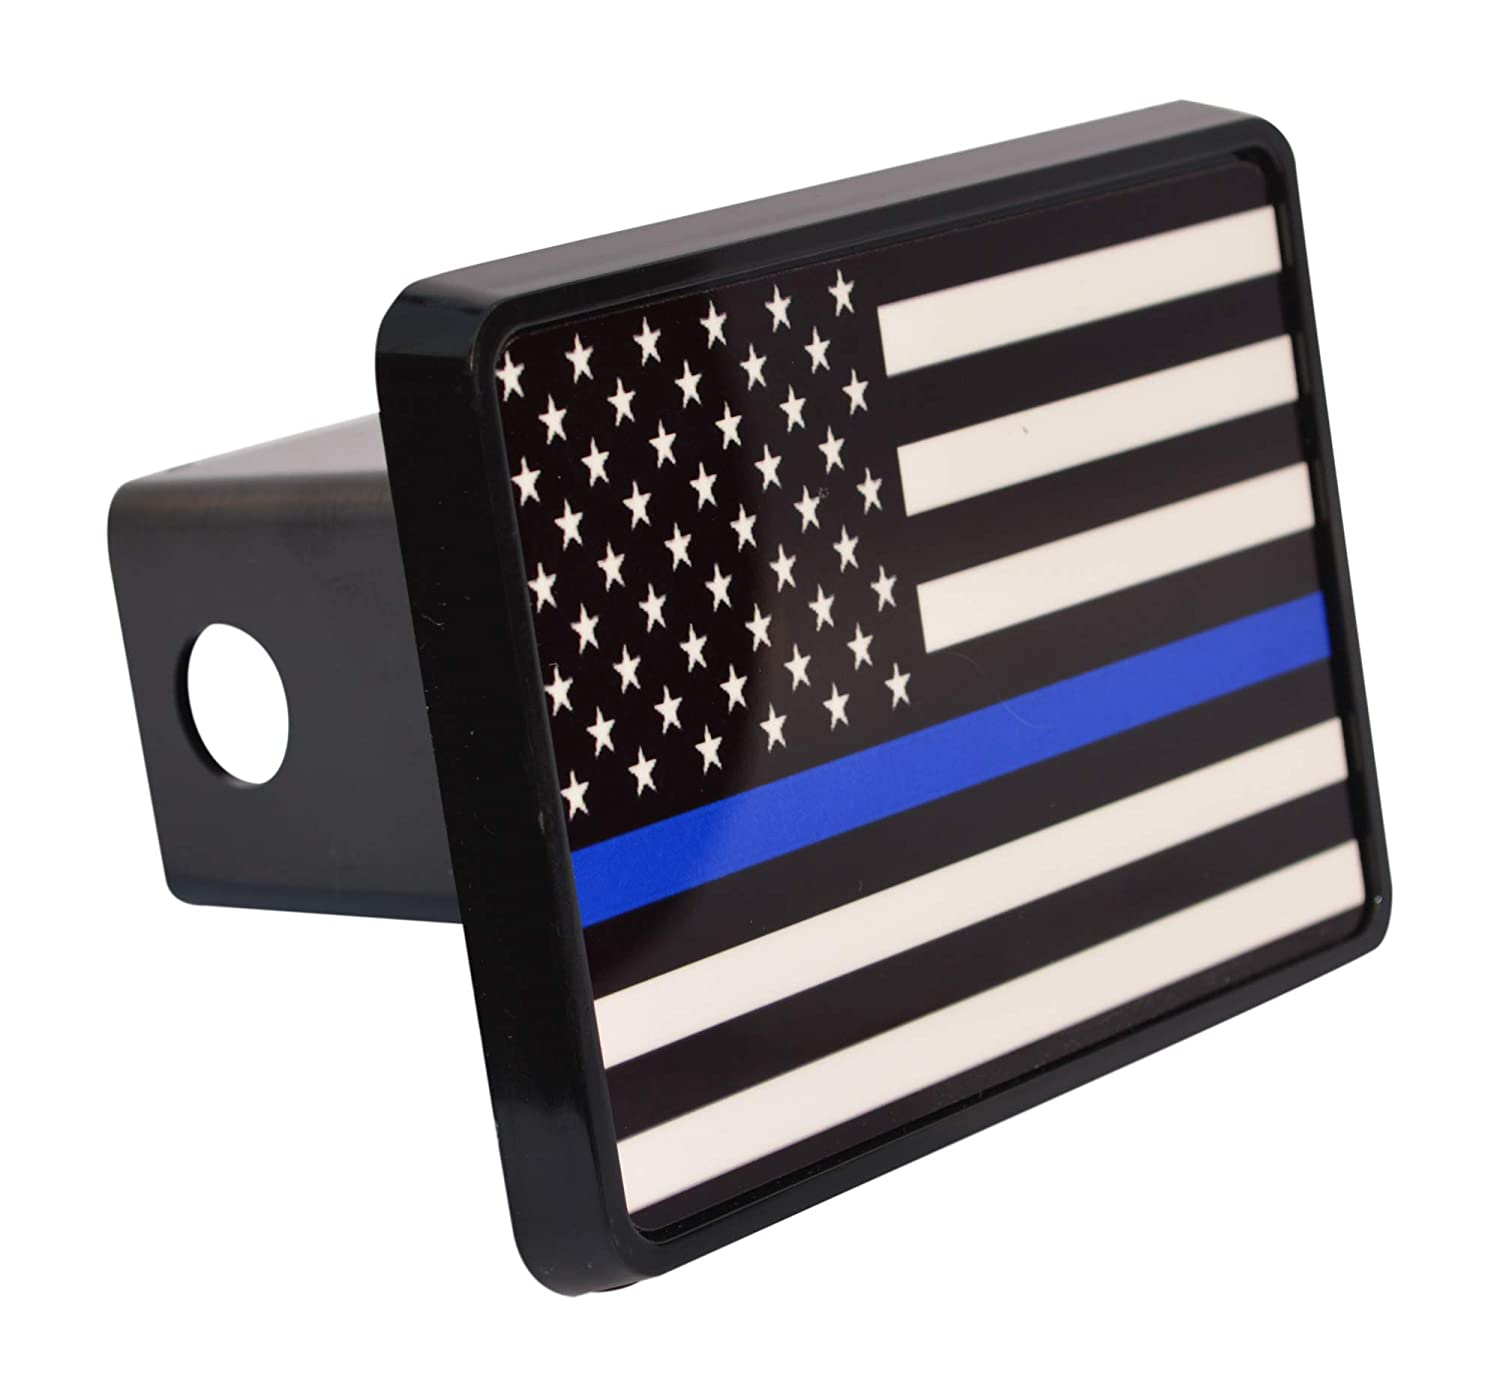 Thin Blue Line Flag Trailer Hitch Cover Plug US Blue Lives Matter Police Officer Law Enforcement Rogue River Tactical VV301